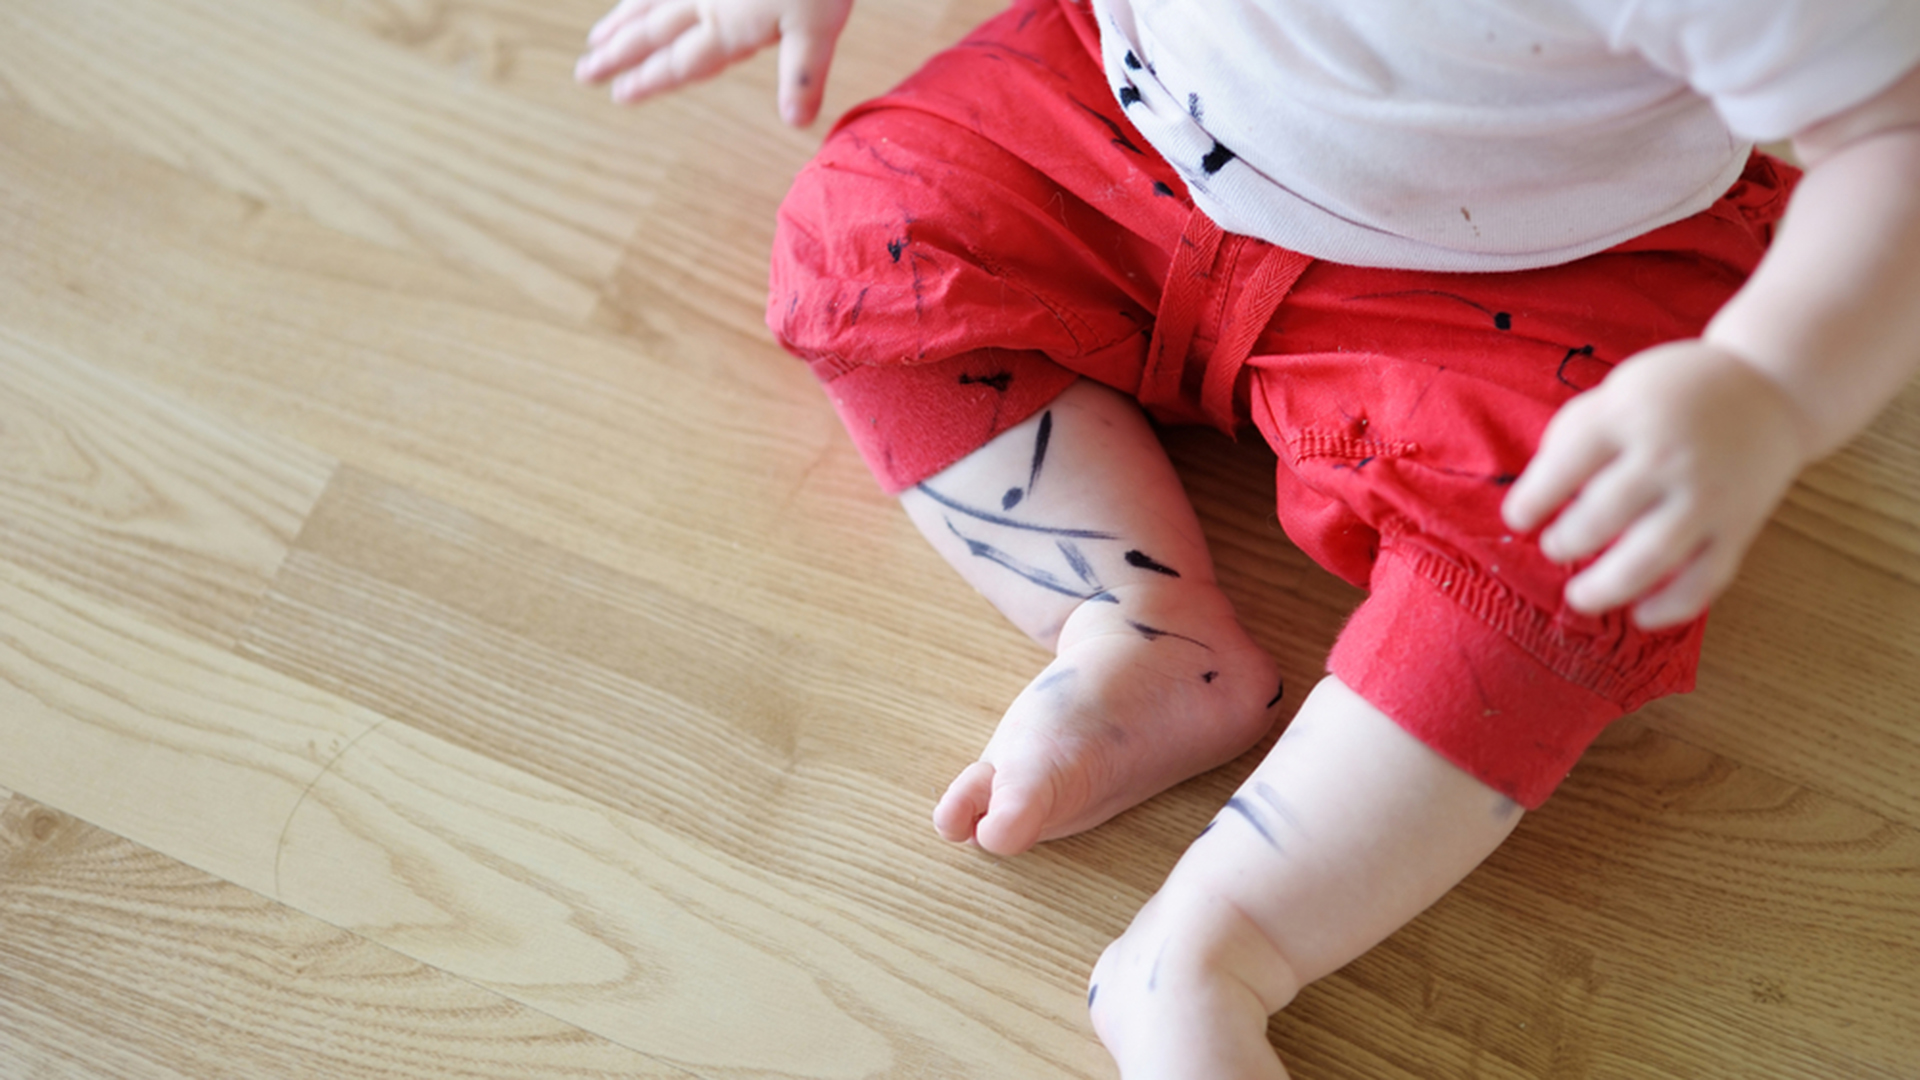 How To Remove Permanent Marker Stains Today Com